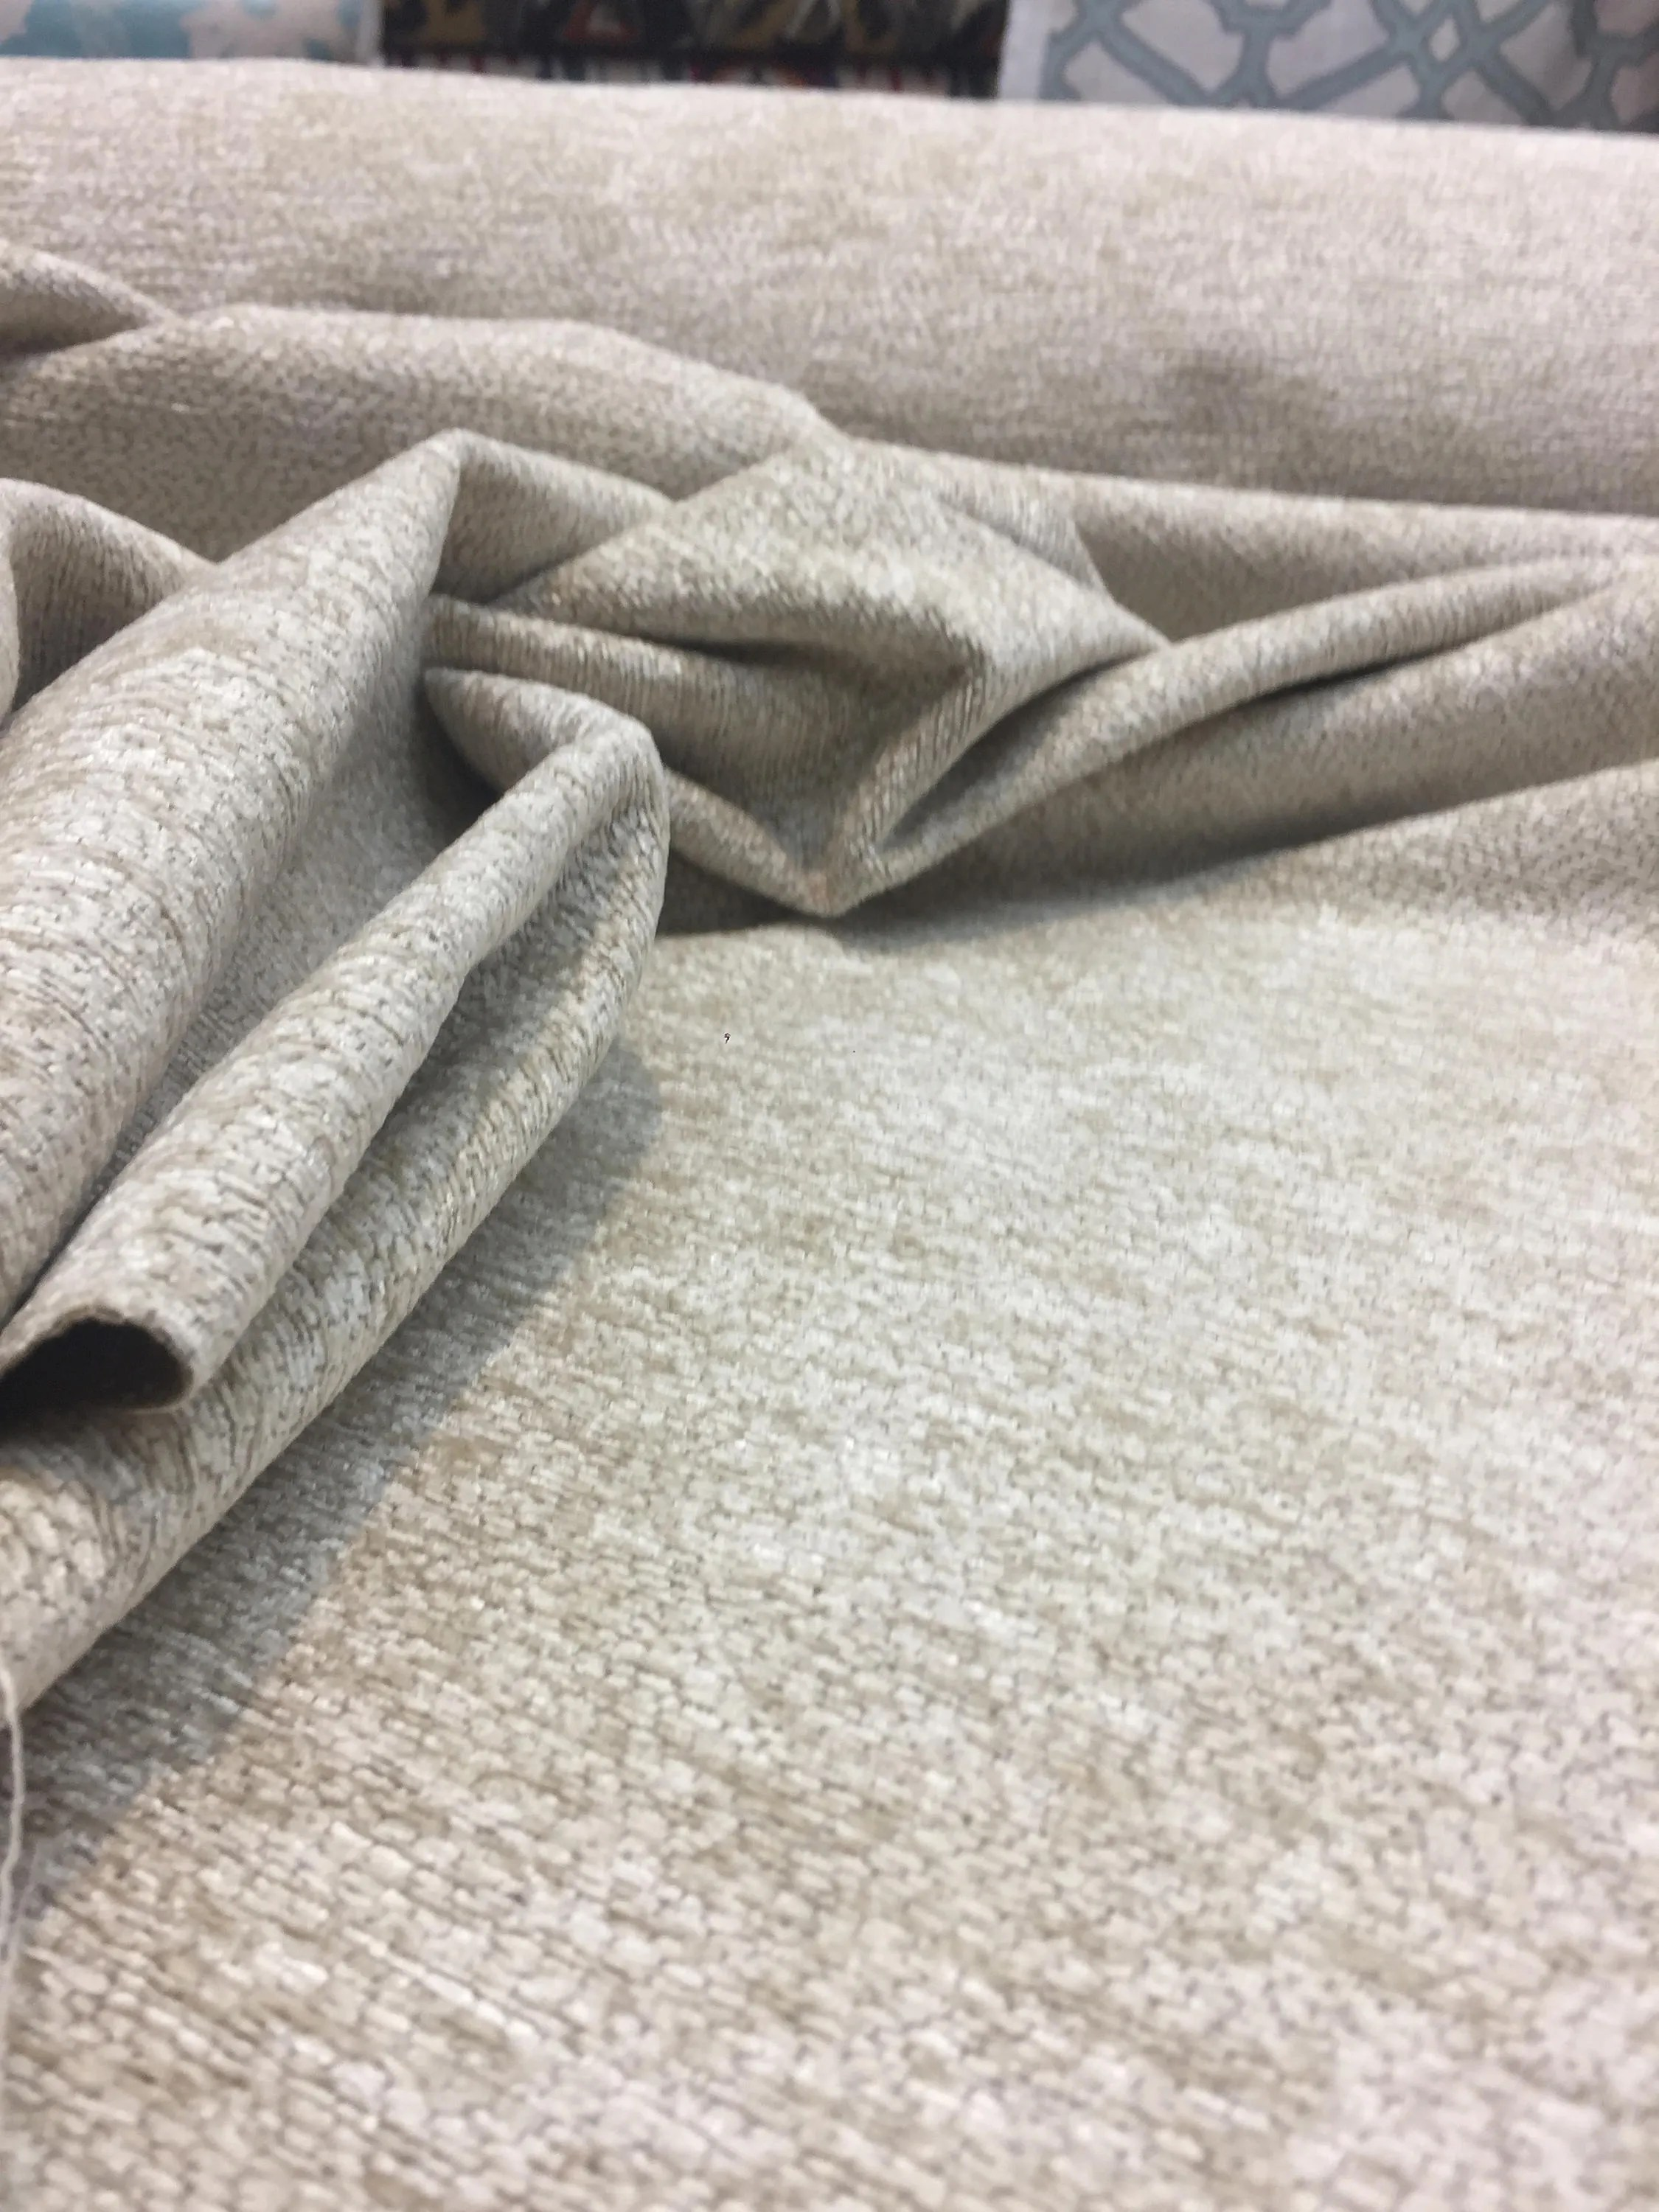 Durable Upholstery Fabric For Sofa Beige Fabric Chenille Upholstery Fabric By The Yard For Couch Pillow Sofa Multipurpose